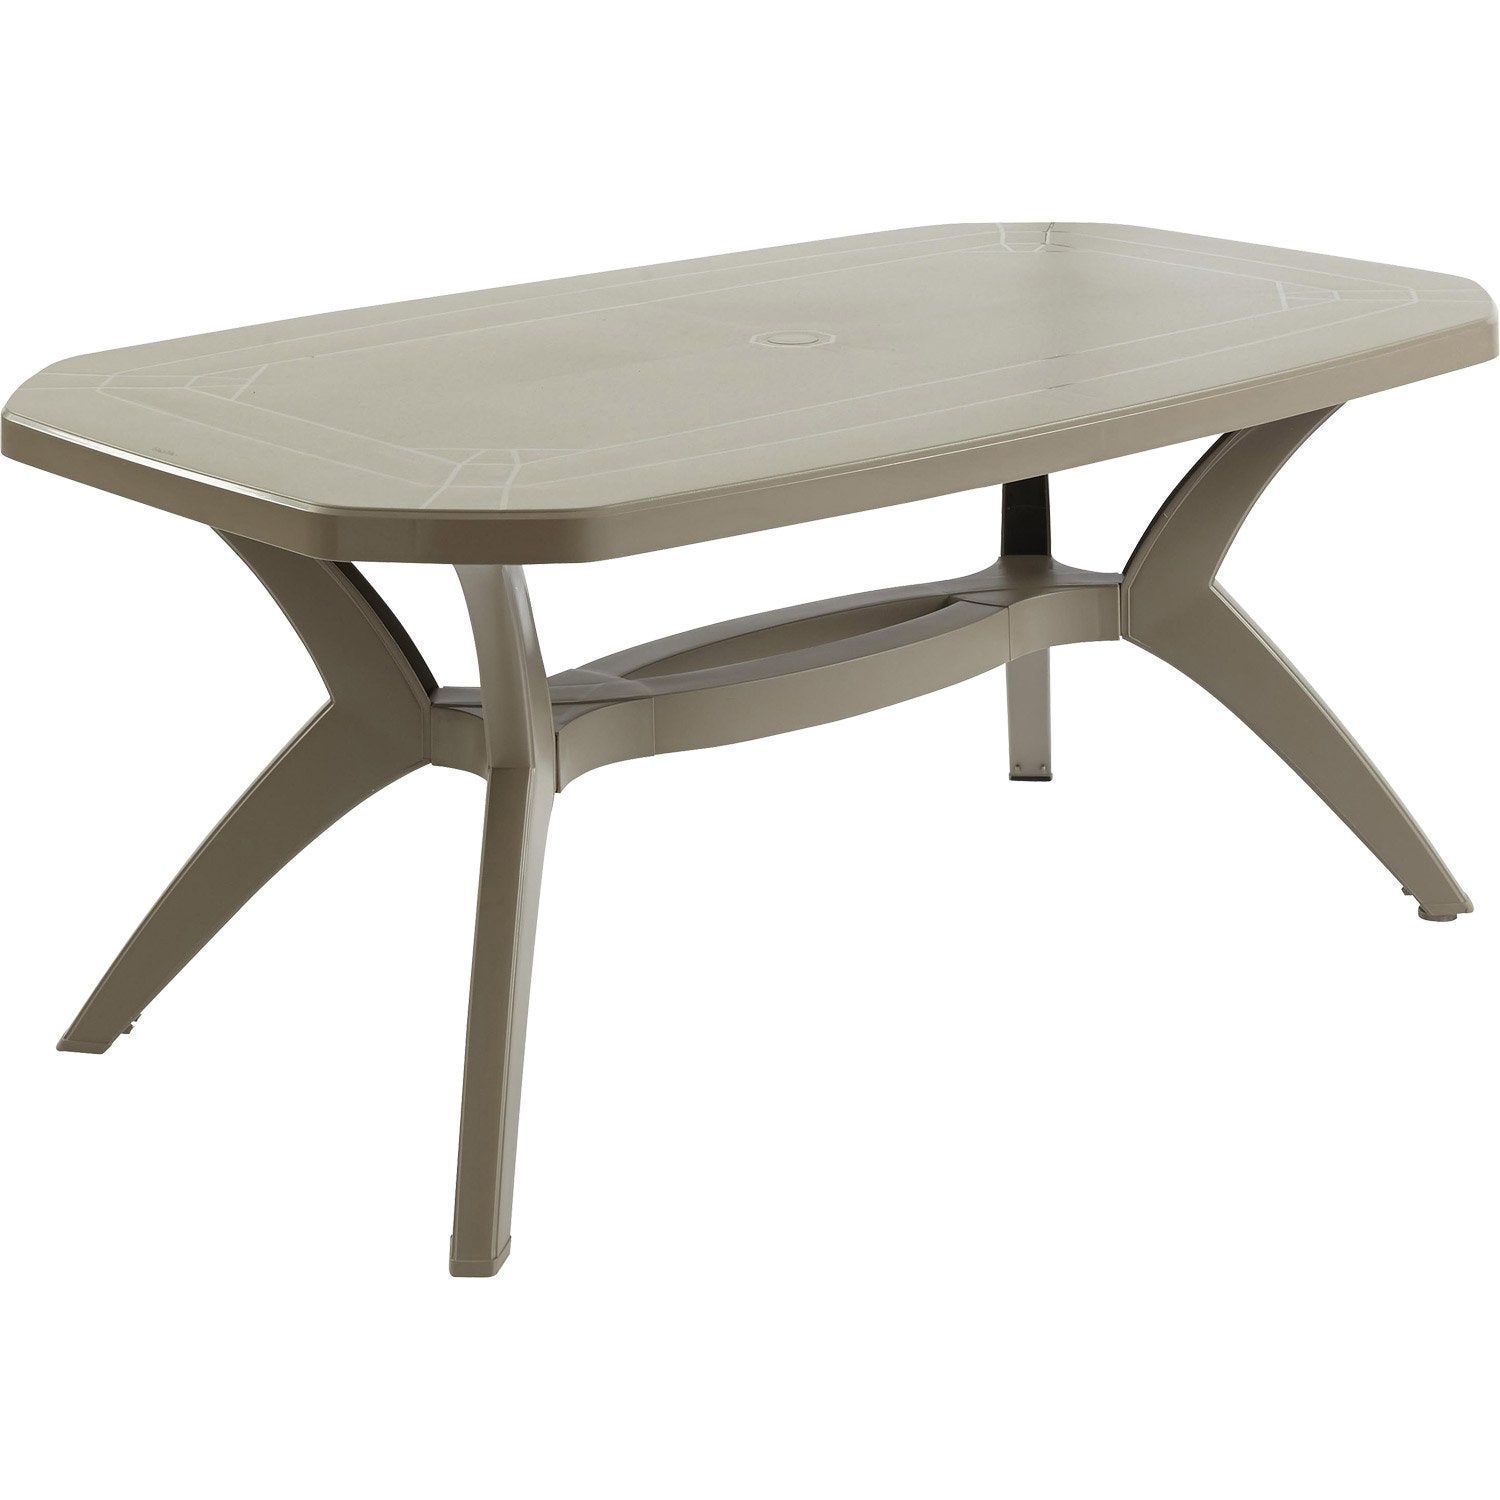 Emejing table jardin resine grosfillex contemporary - Leroy merlin la eliana ...